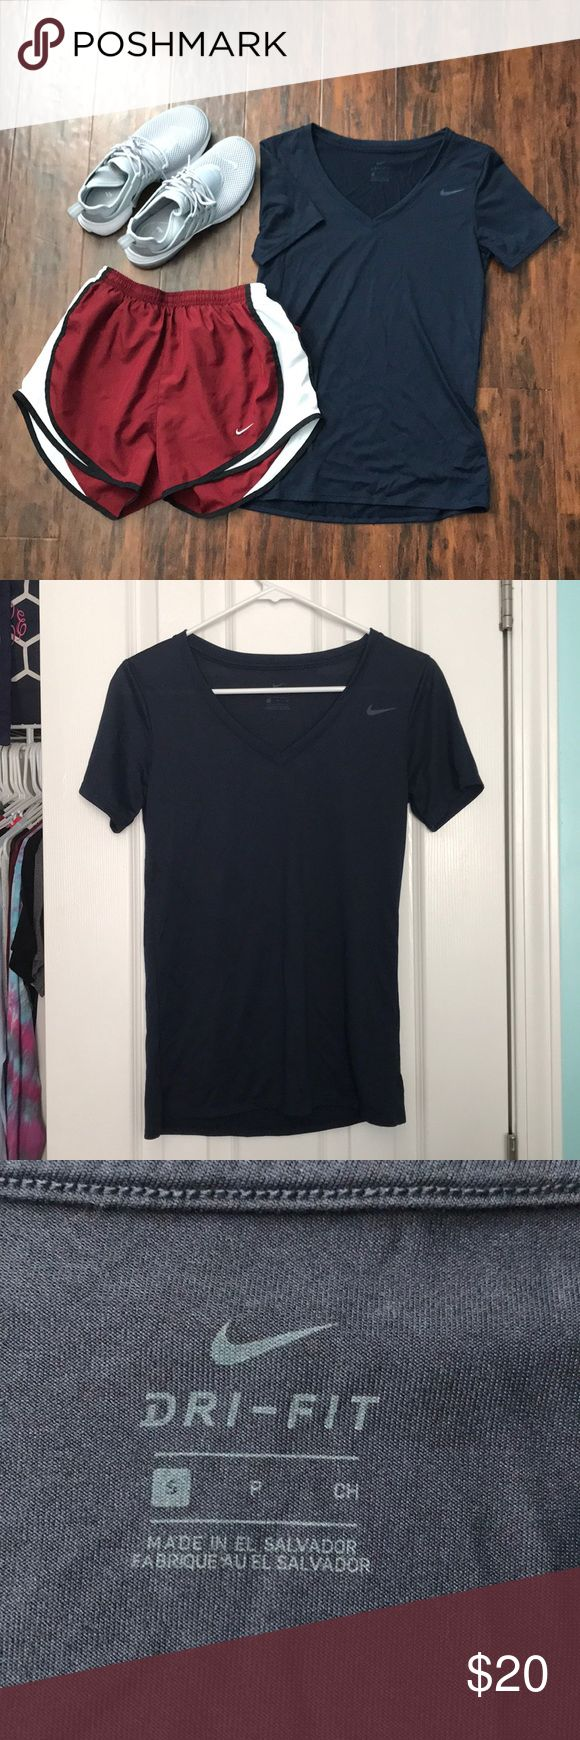 BOGO 1/2 OFF Nike Dri-fit vneck Navy dri-fit vneck, never worn, perfect condition ✨make an offer✨ feel free to comment if you have any questions 😊 ‼️ALL LISTINGS BUY ONE GET ONE HALF OFF❗️(of the two items, the less expensive item will be half off) just make a bundle and I'll re-price‼️ Nike Tops Tees - Short Sleeve